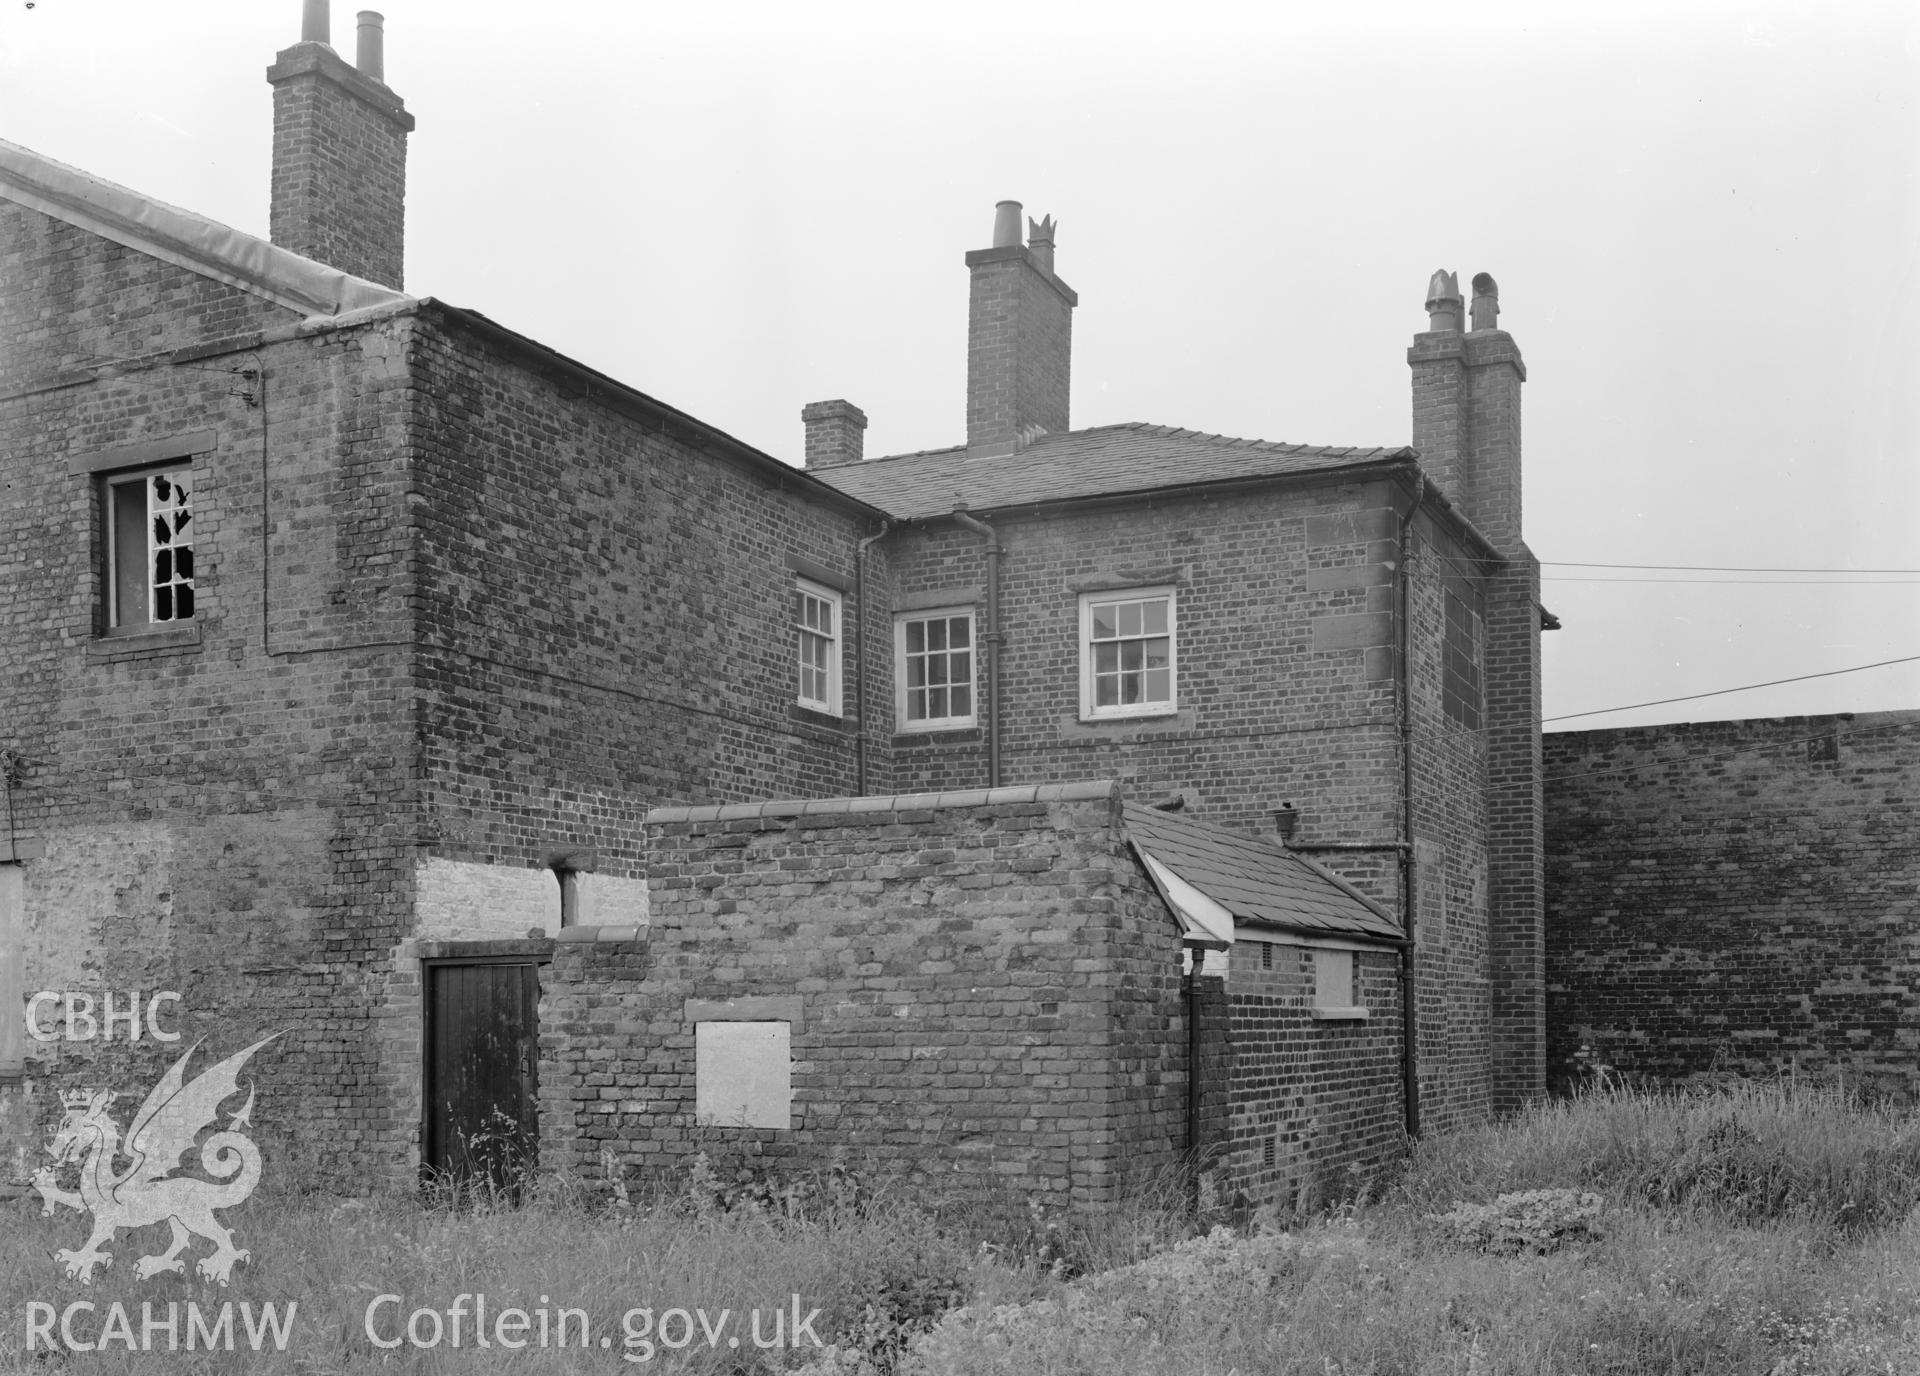 D.O.E photograph of Flint Gaol - north corner of main block, looking south. In castle outer ward (since removed).